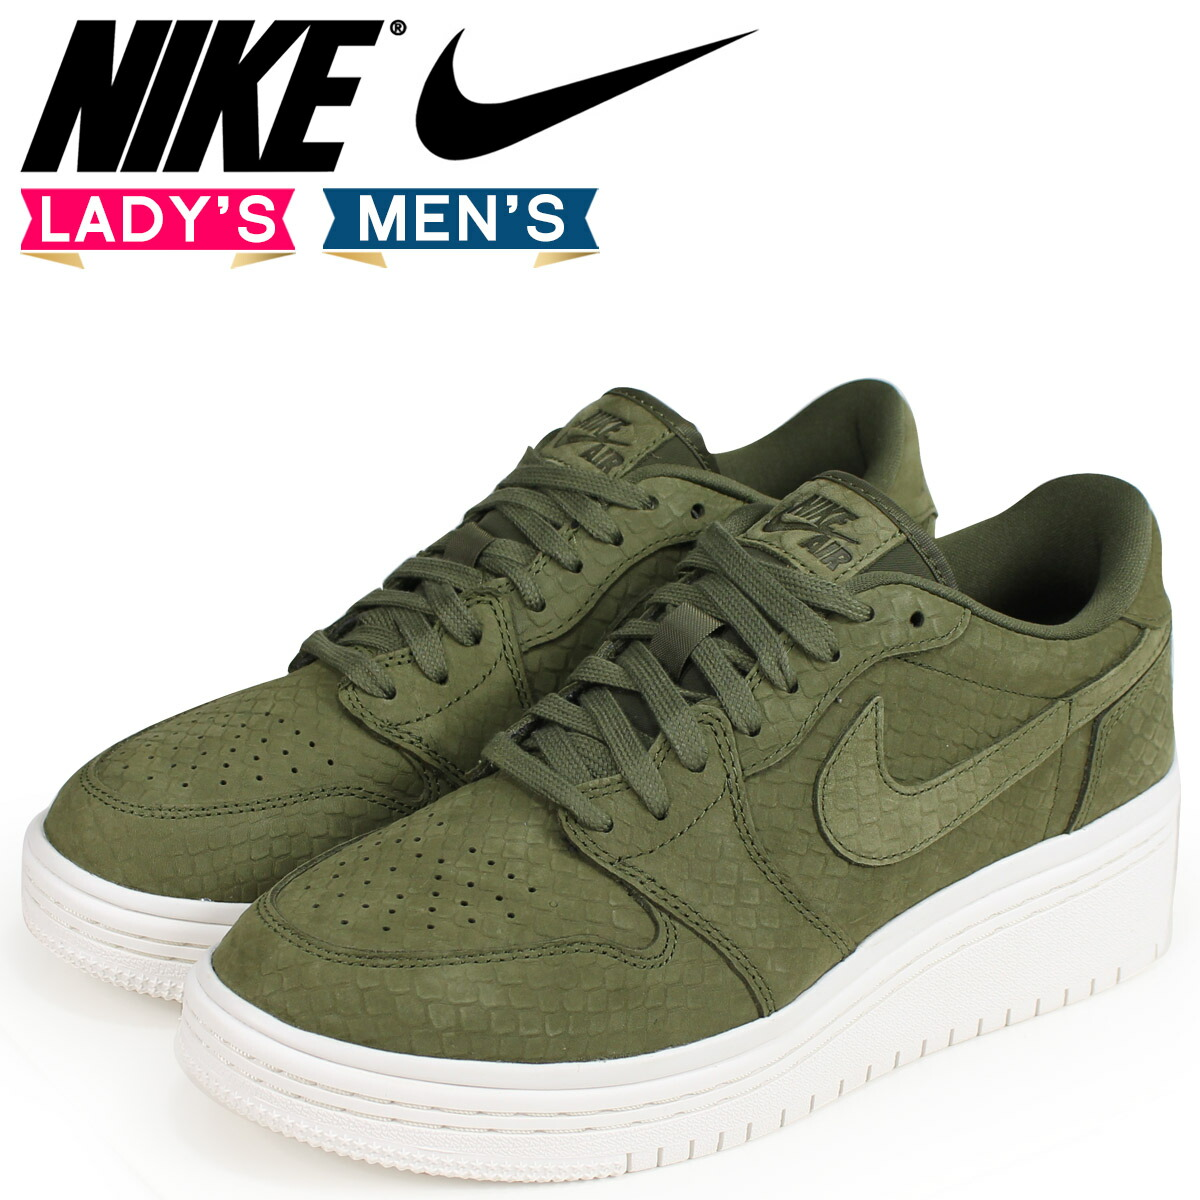 7e4cc6824fcb2a NIKE Nike Air Jordan 1 nostalgic lady s men sneakers WMNS AIR JORDAN 1  RETRO LOW LIFTED AO1334-300 olive  load planned Shinnyu load in reservation  product ...